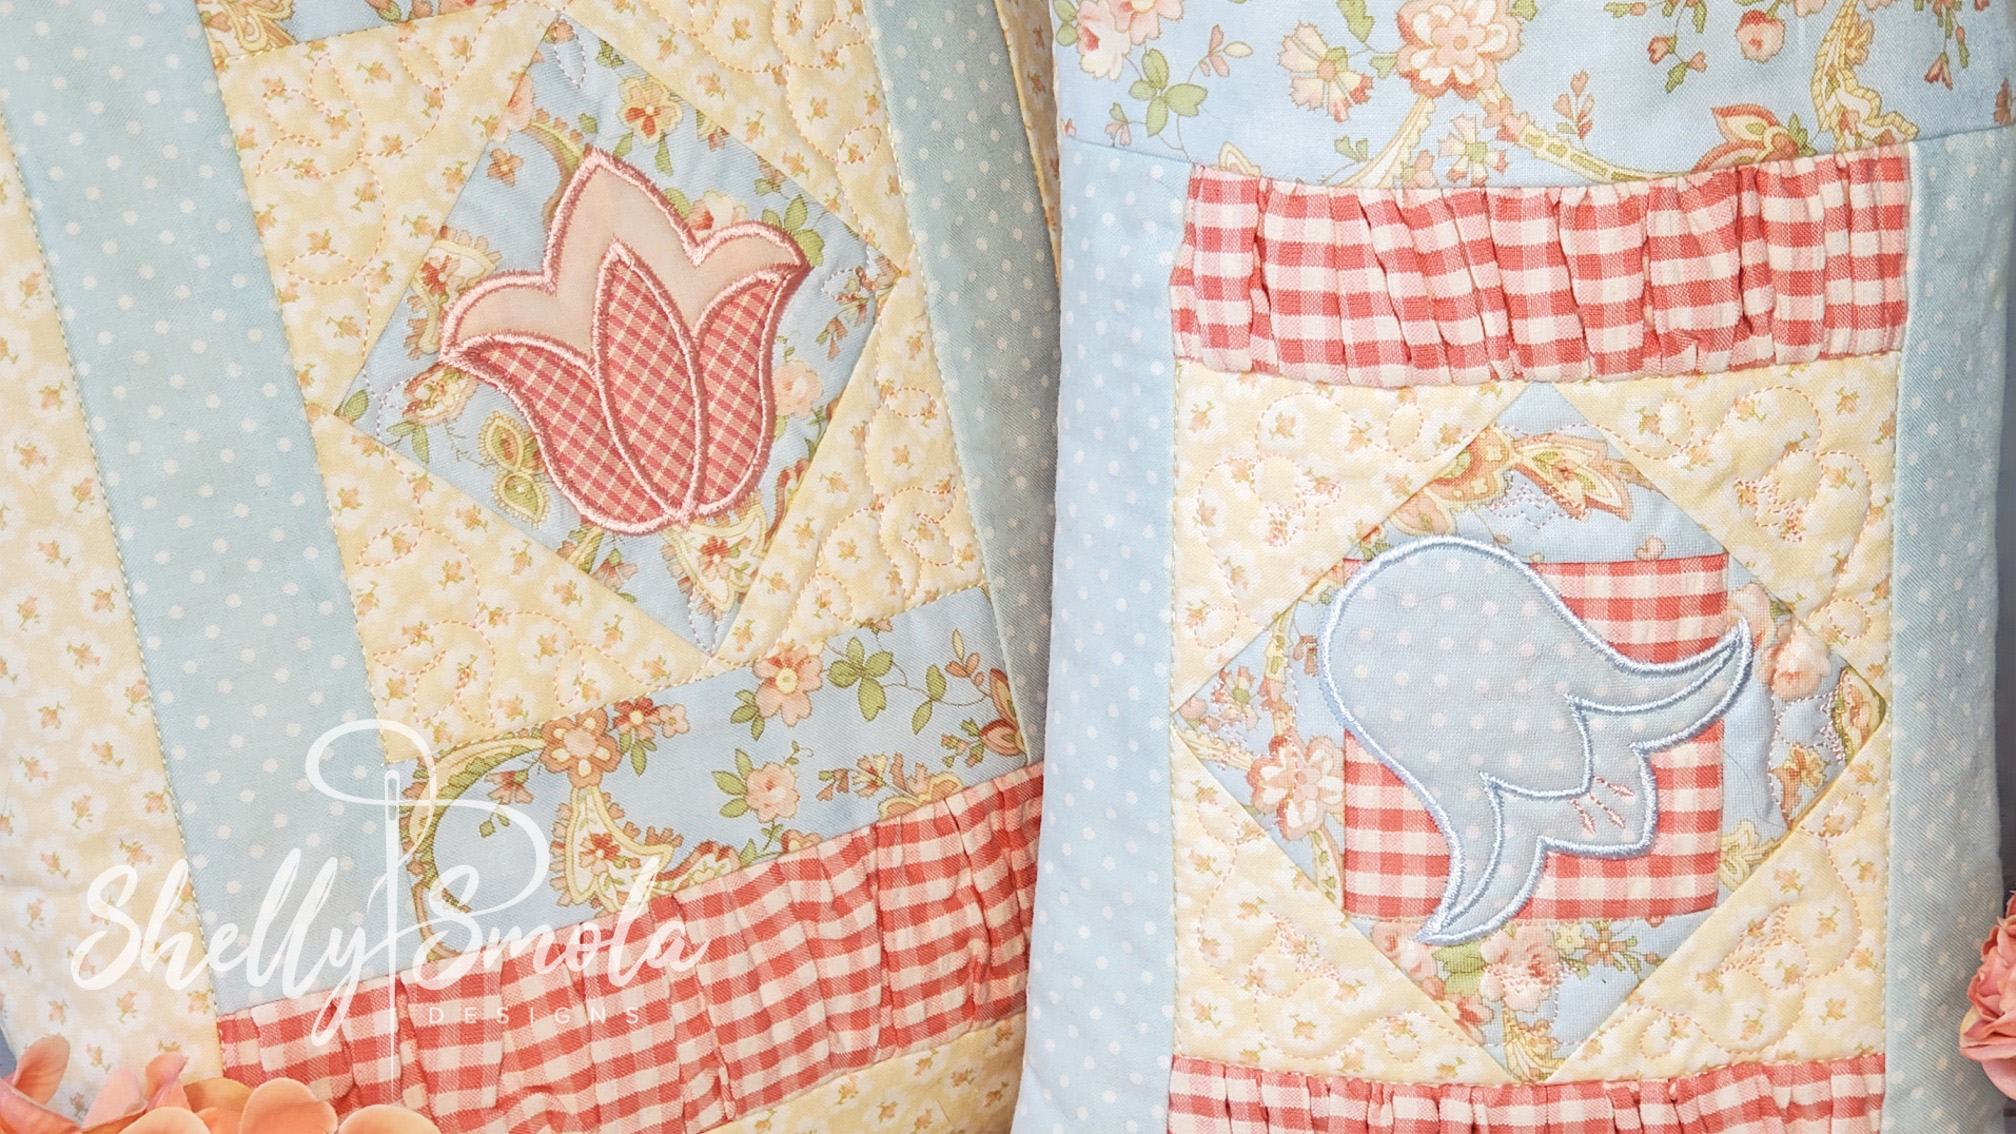 Spring Quilt Bags by Shelly Smola